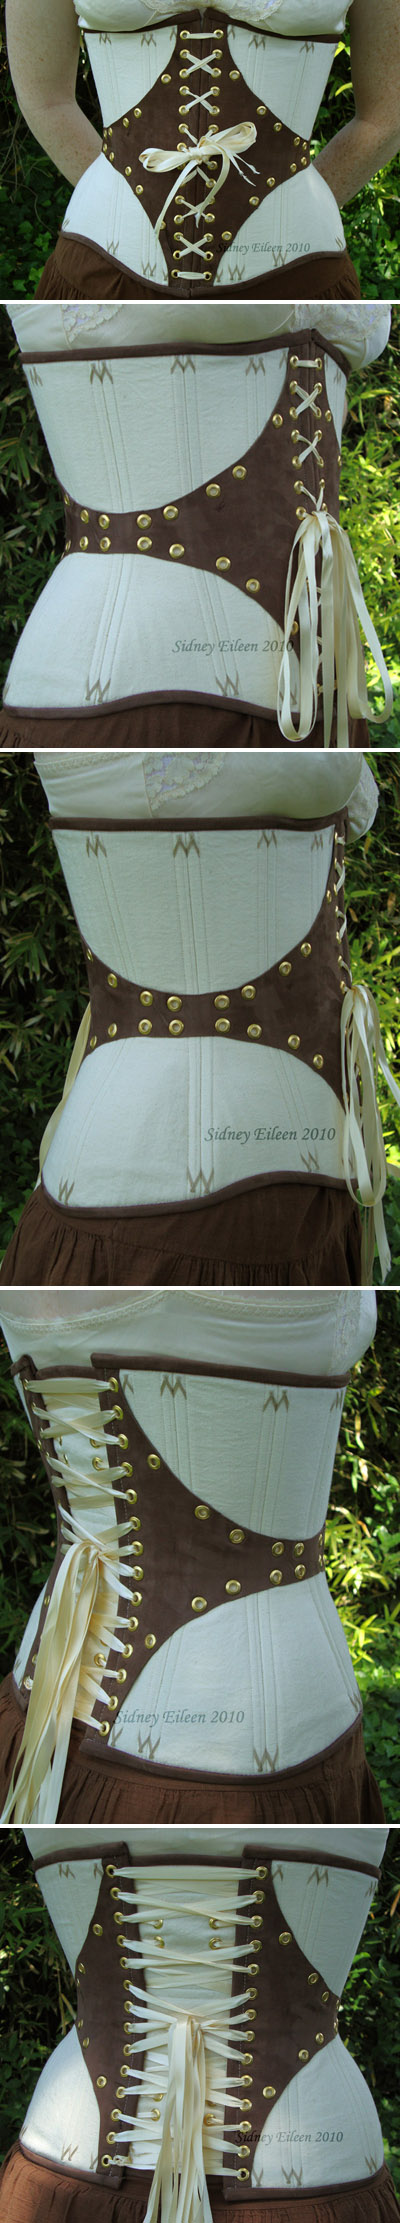 Leather and Coutil Grommeted Underbust, by Sidney Eileen